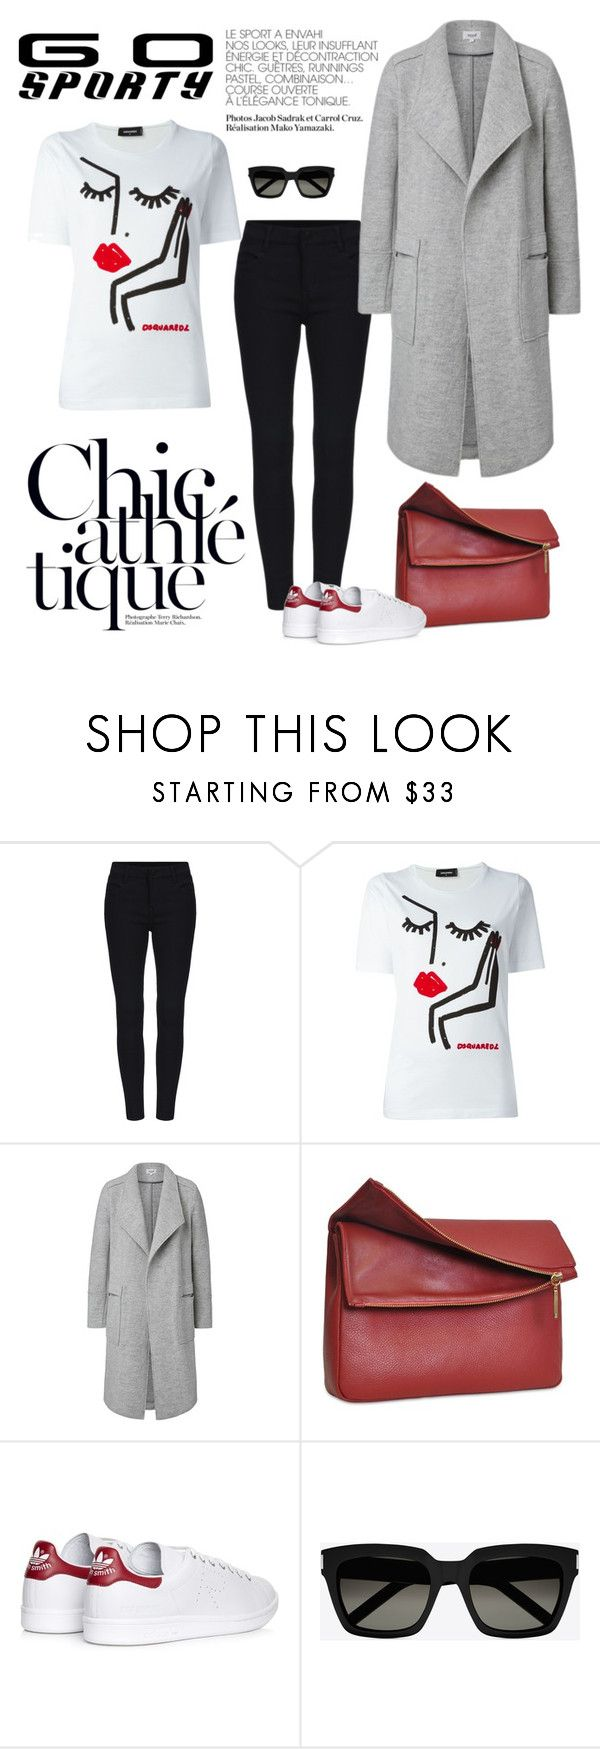 """Sporty Chic"" by cruzeirodotejo ❤ liked on Polyvore featuring Dsquared2, Eddie, adidas, Yves Saint Laurent and sportystyle"